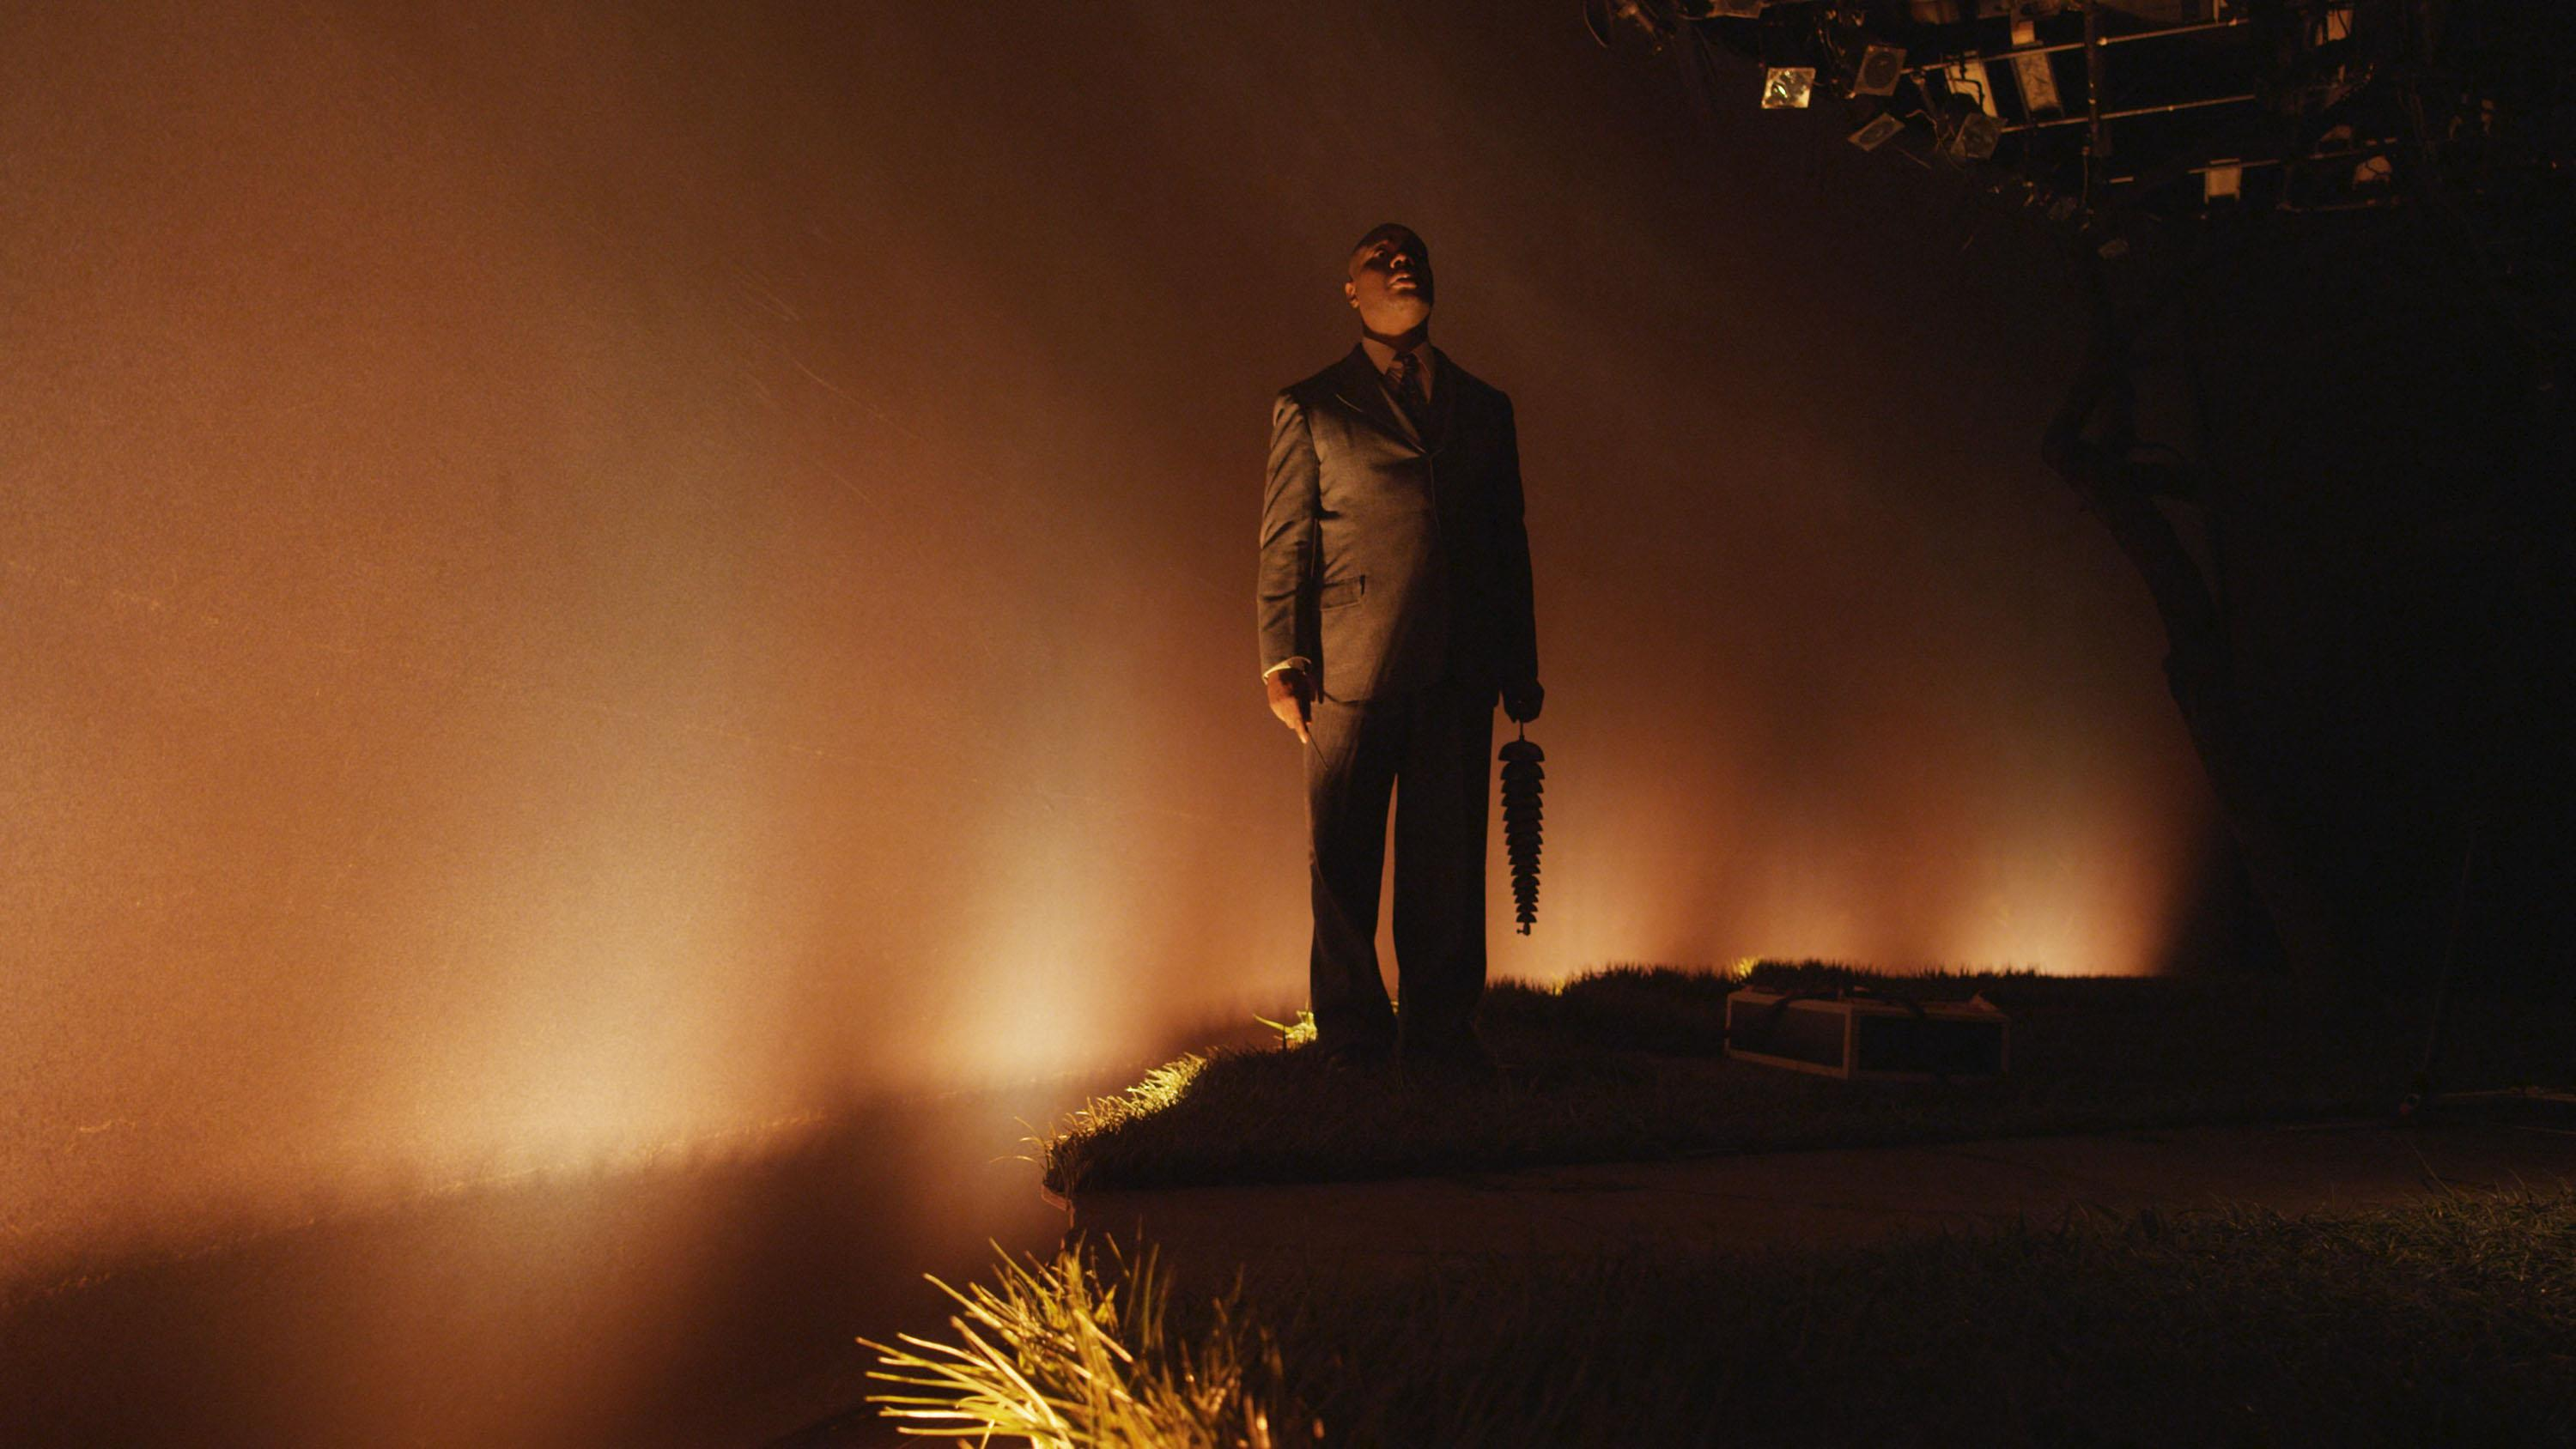 Video still shows a man wearing a suit on an eerie, dimly lit stage.